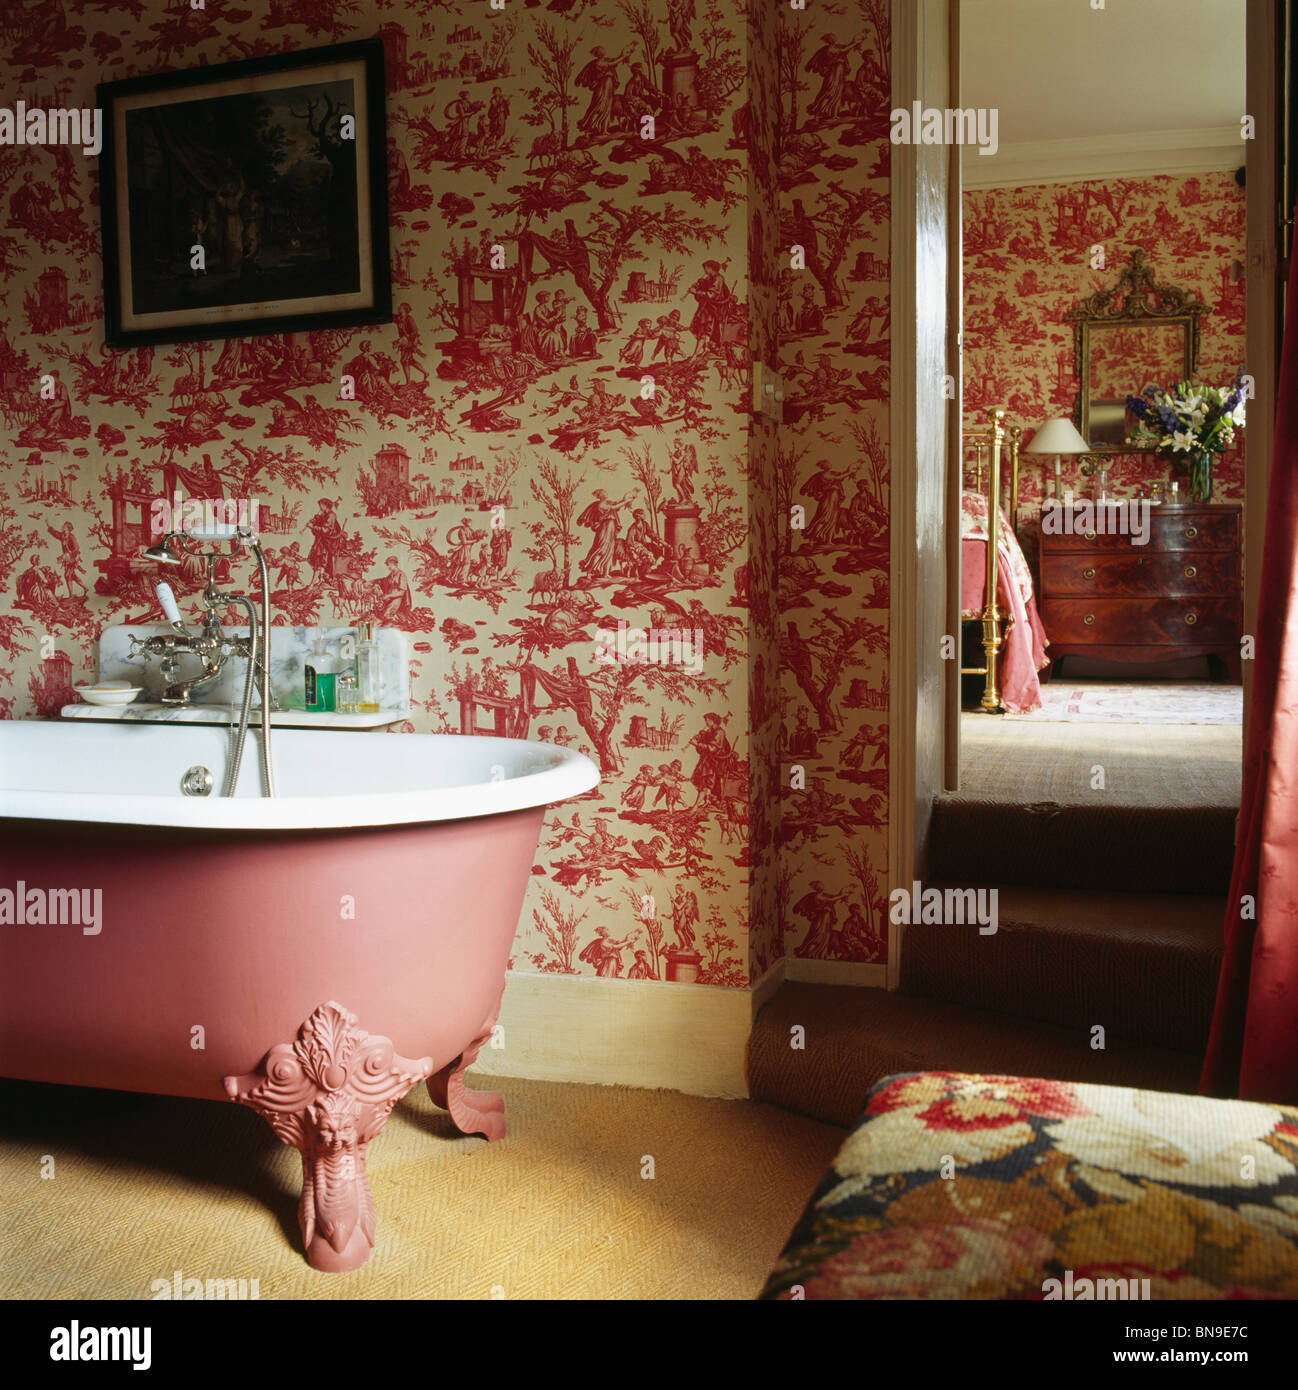 Pink Toile De Jouy Wallpaper And Pink Roll Top Bath In En Suite